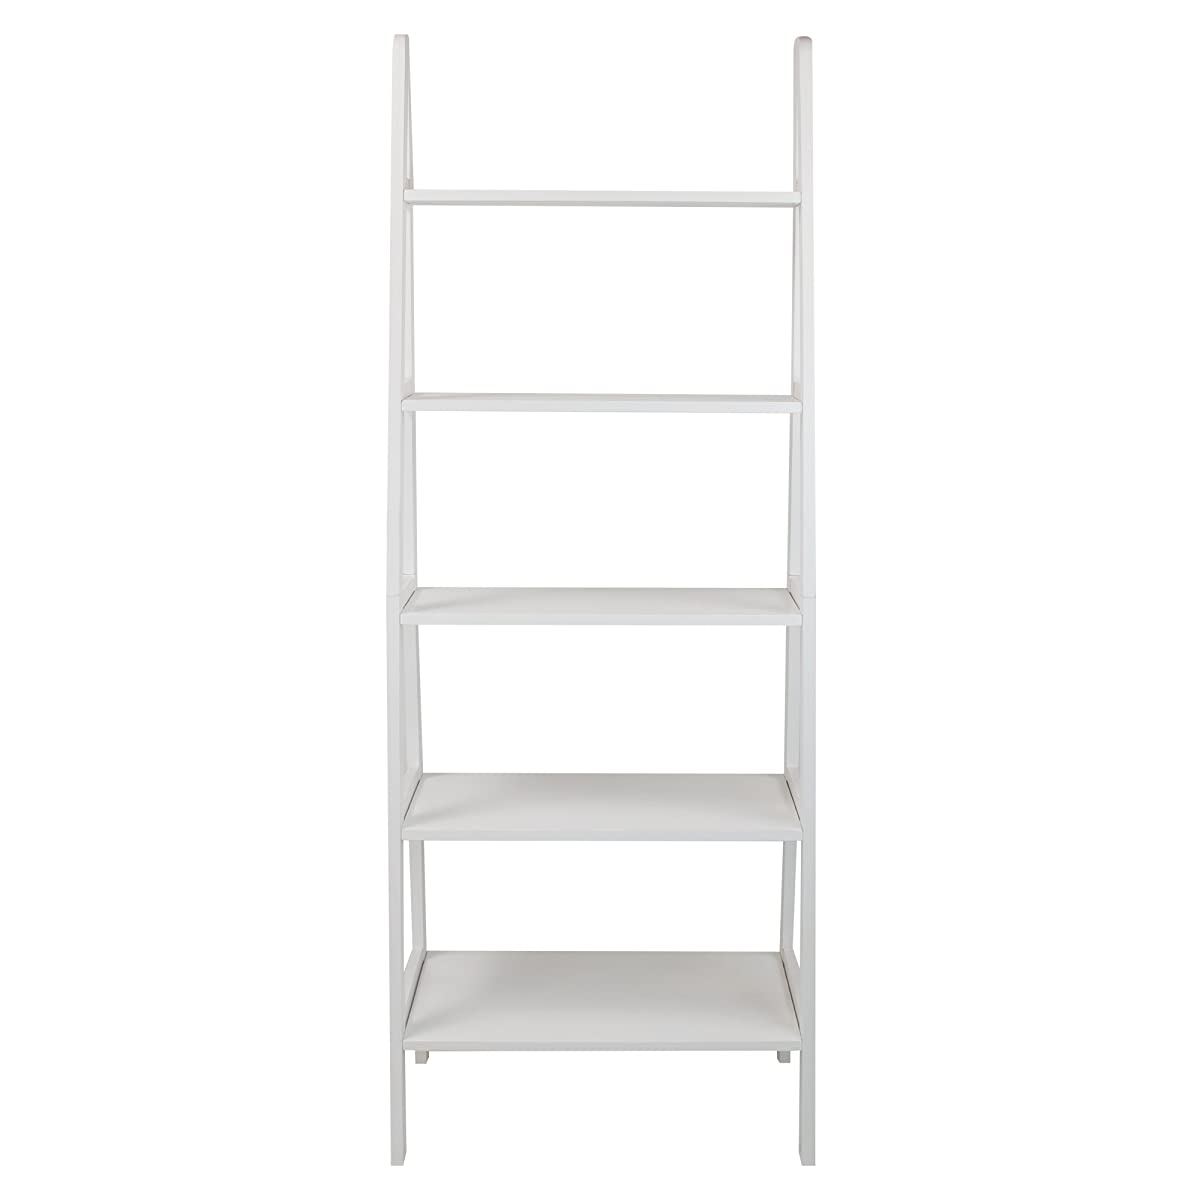 Casual Home 176-51 5-Shelf Ladder Bookcase, White